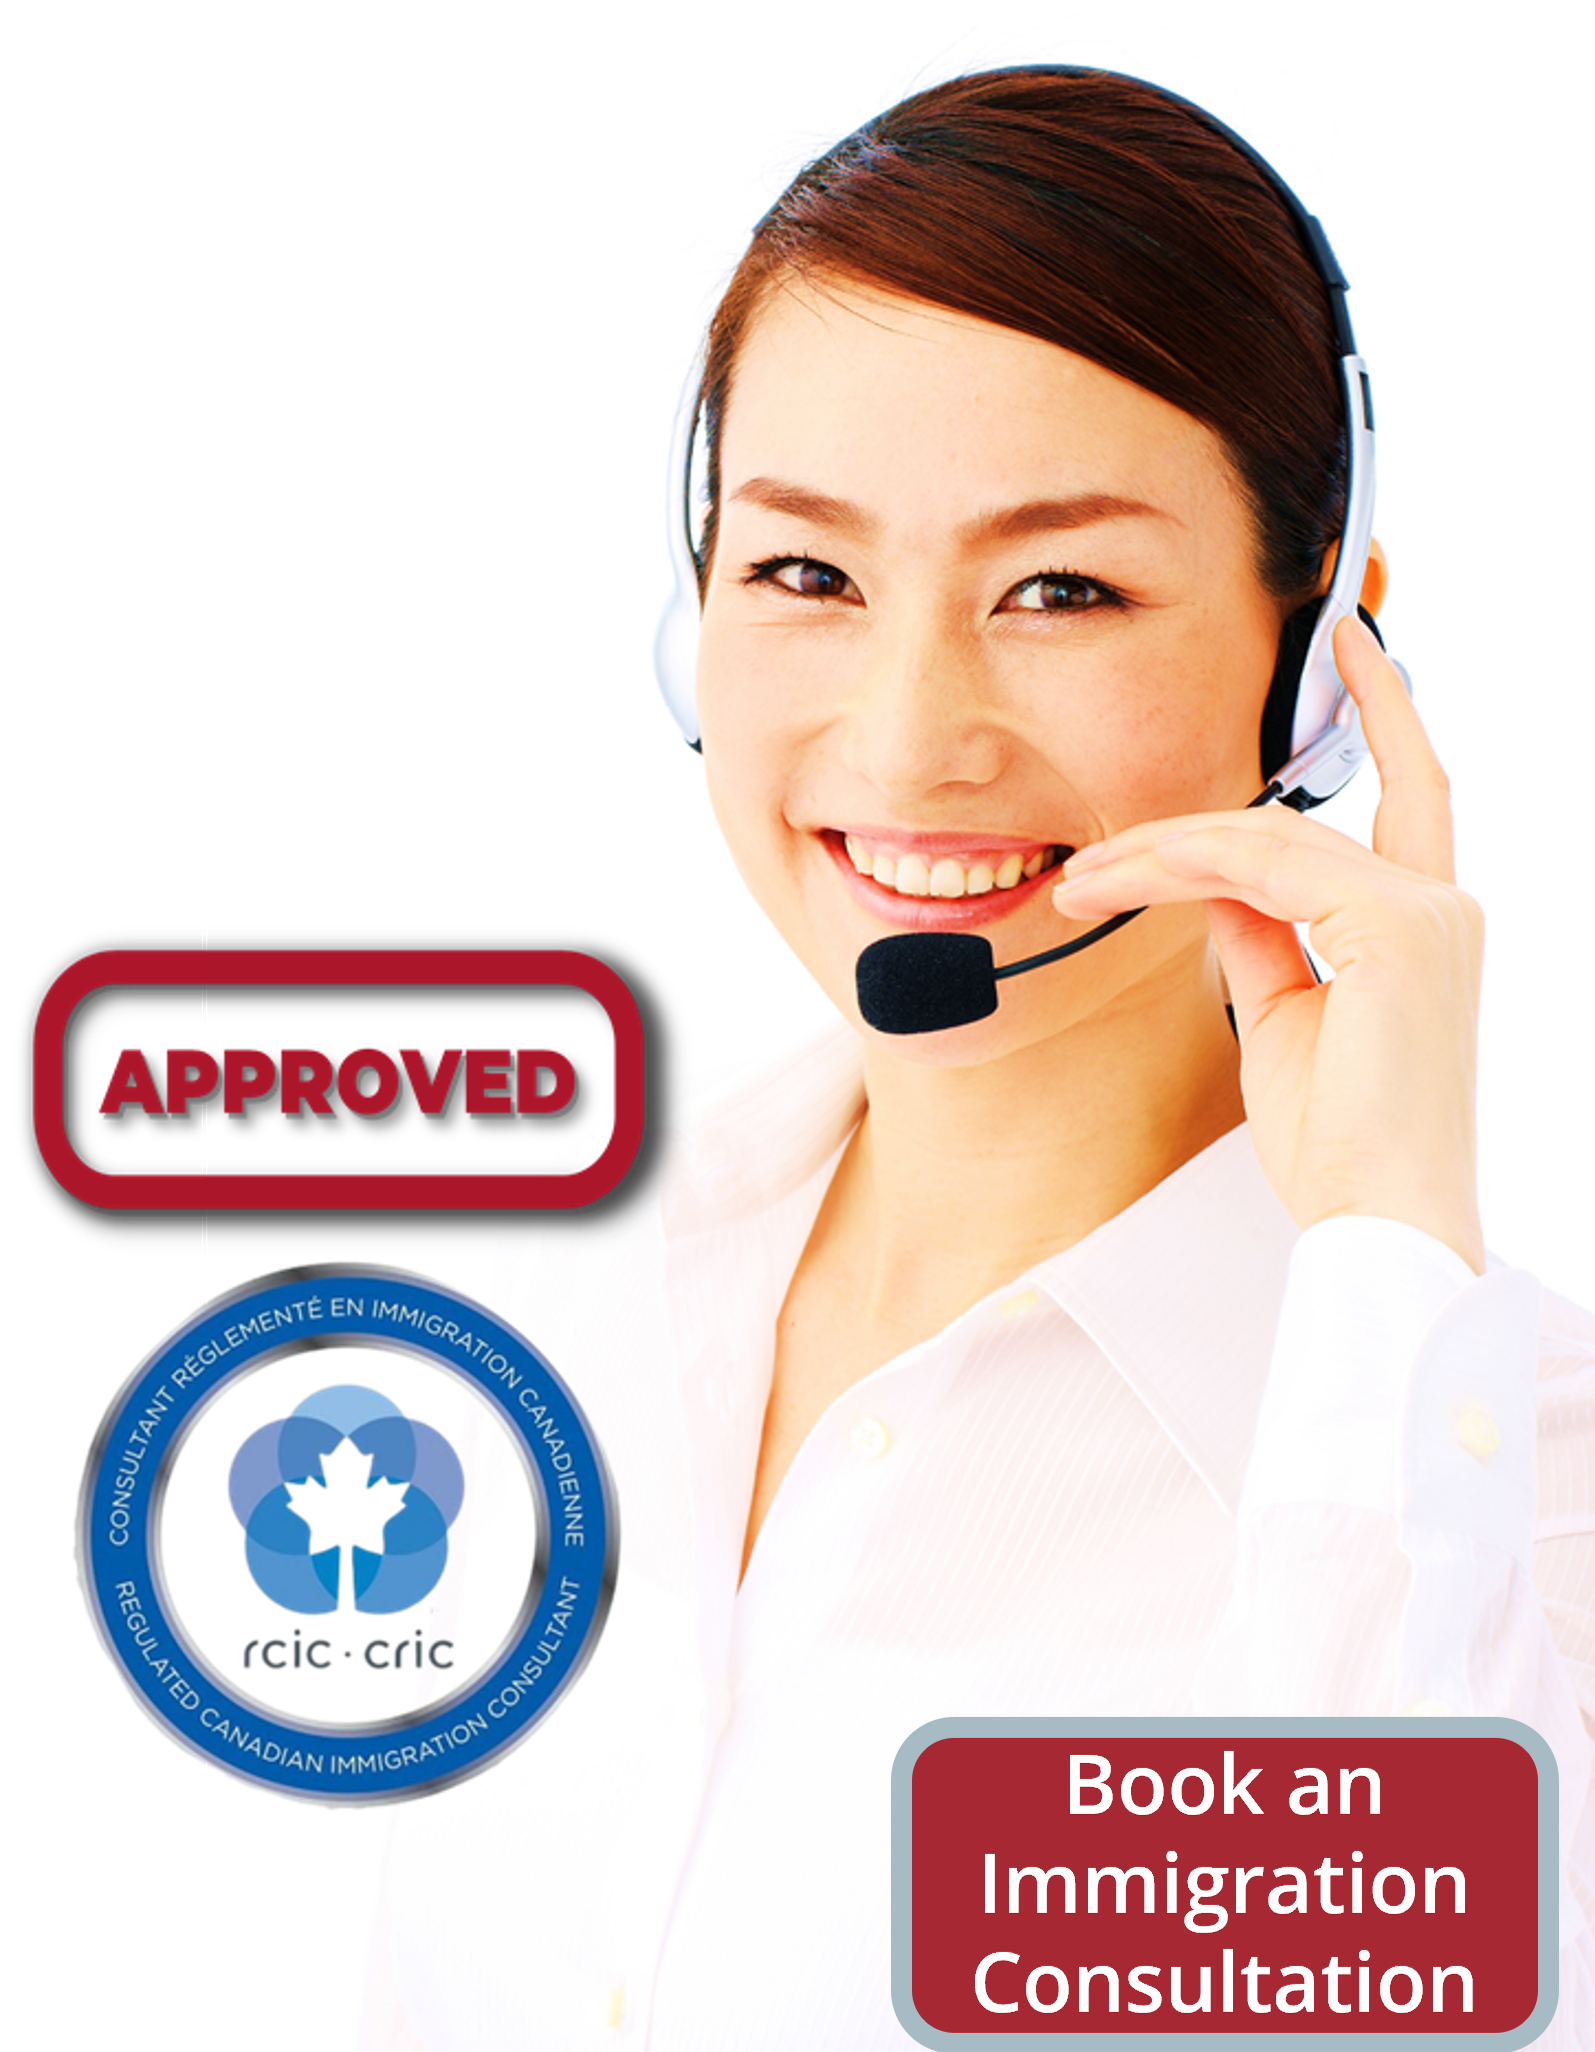 Book an Immigration Consultation with oour In-House Regulated Canadian Immigration Consultants